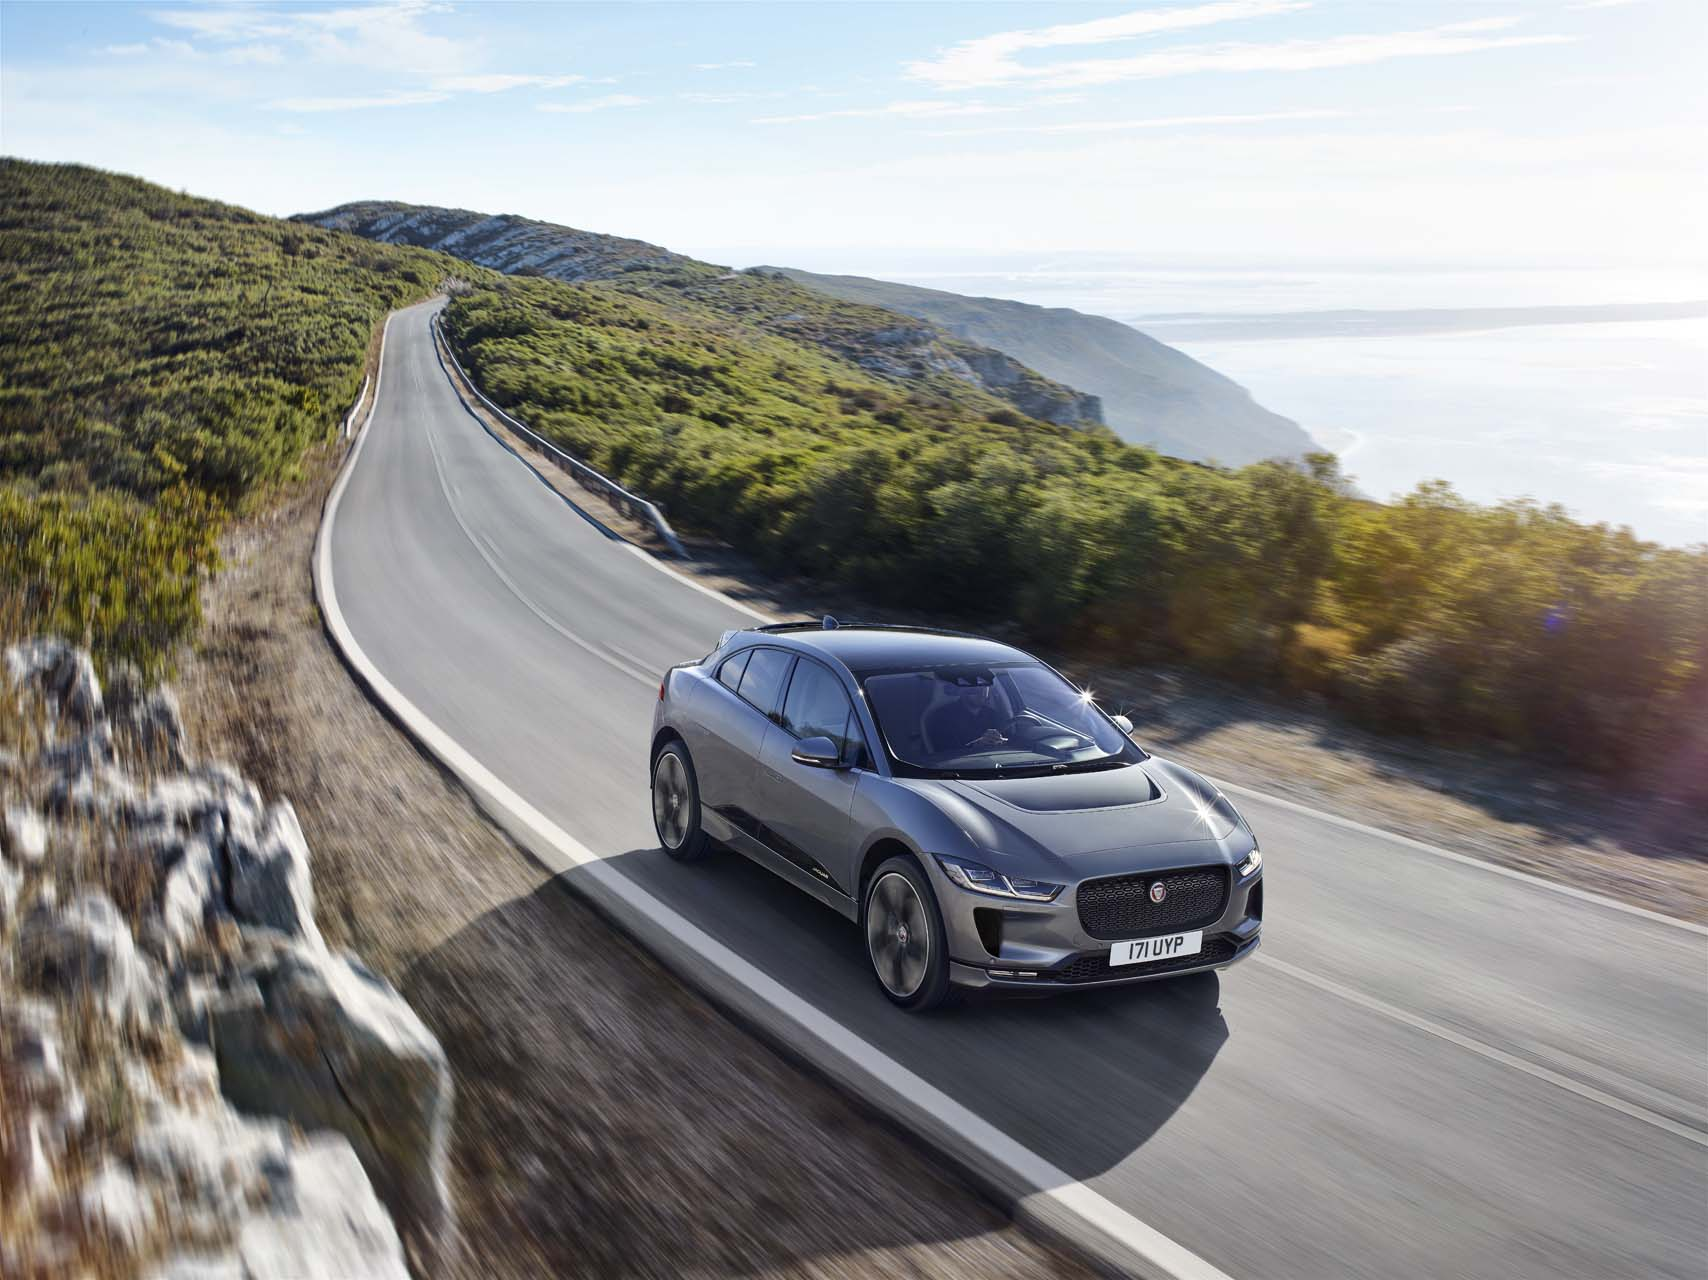 2019 Jaguar I-Pace electric crossover debuts in production ...